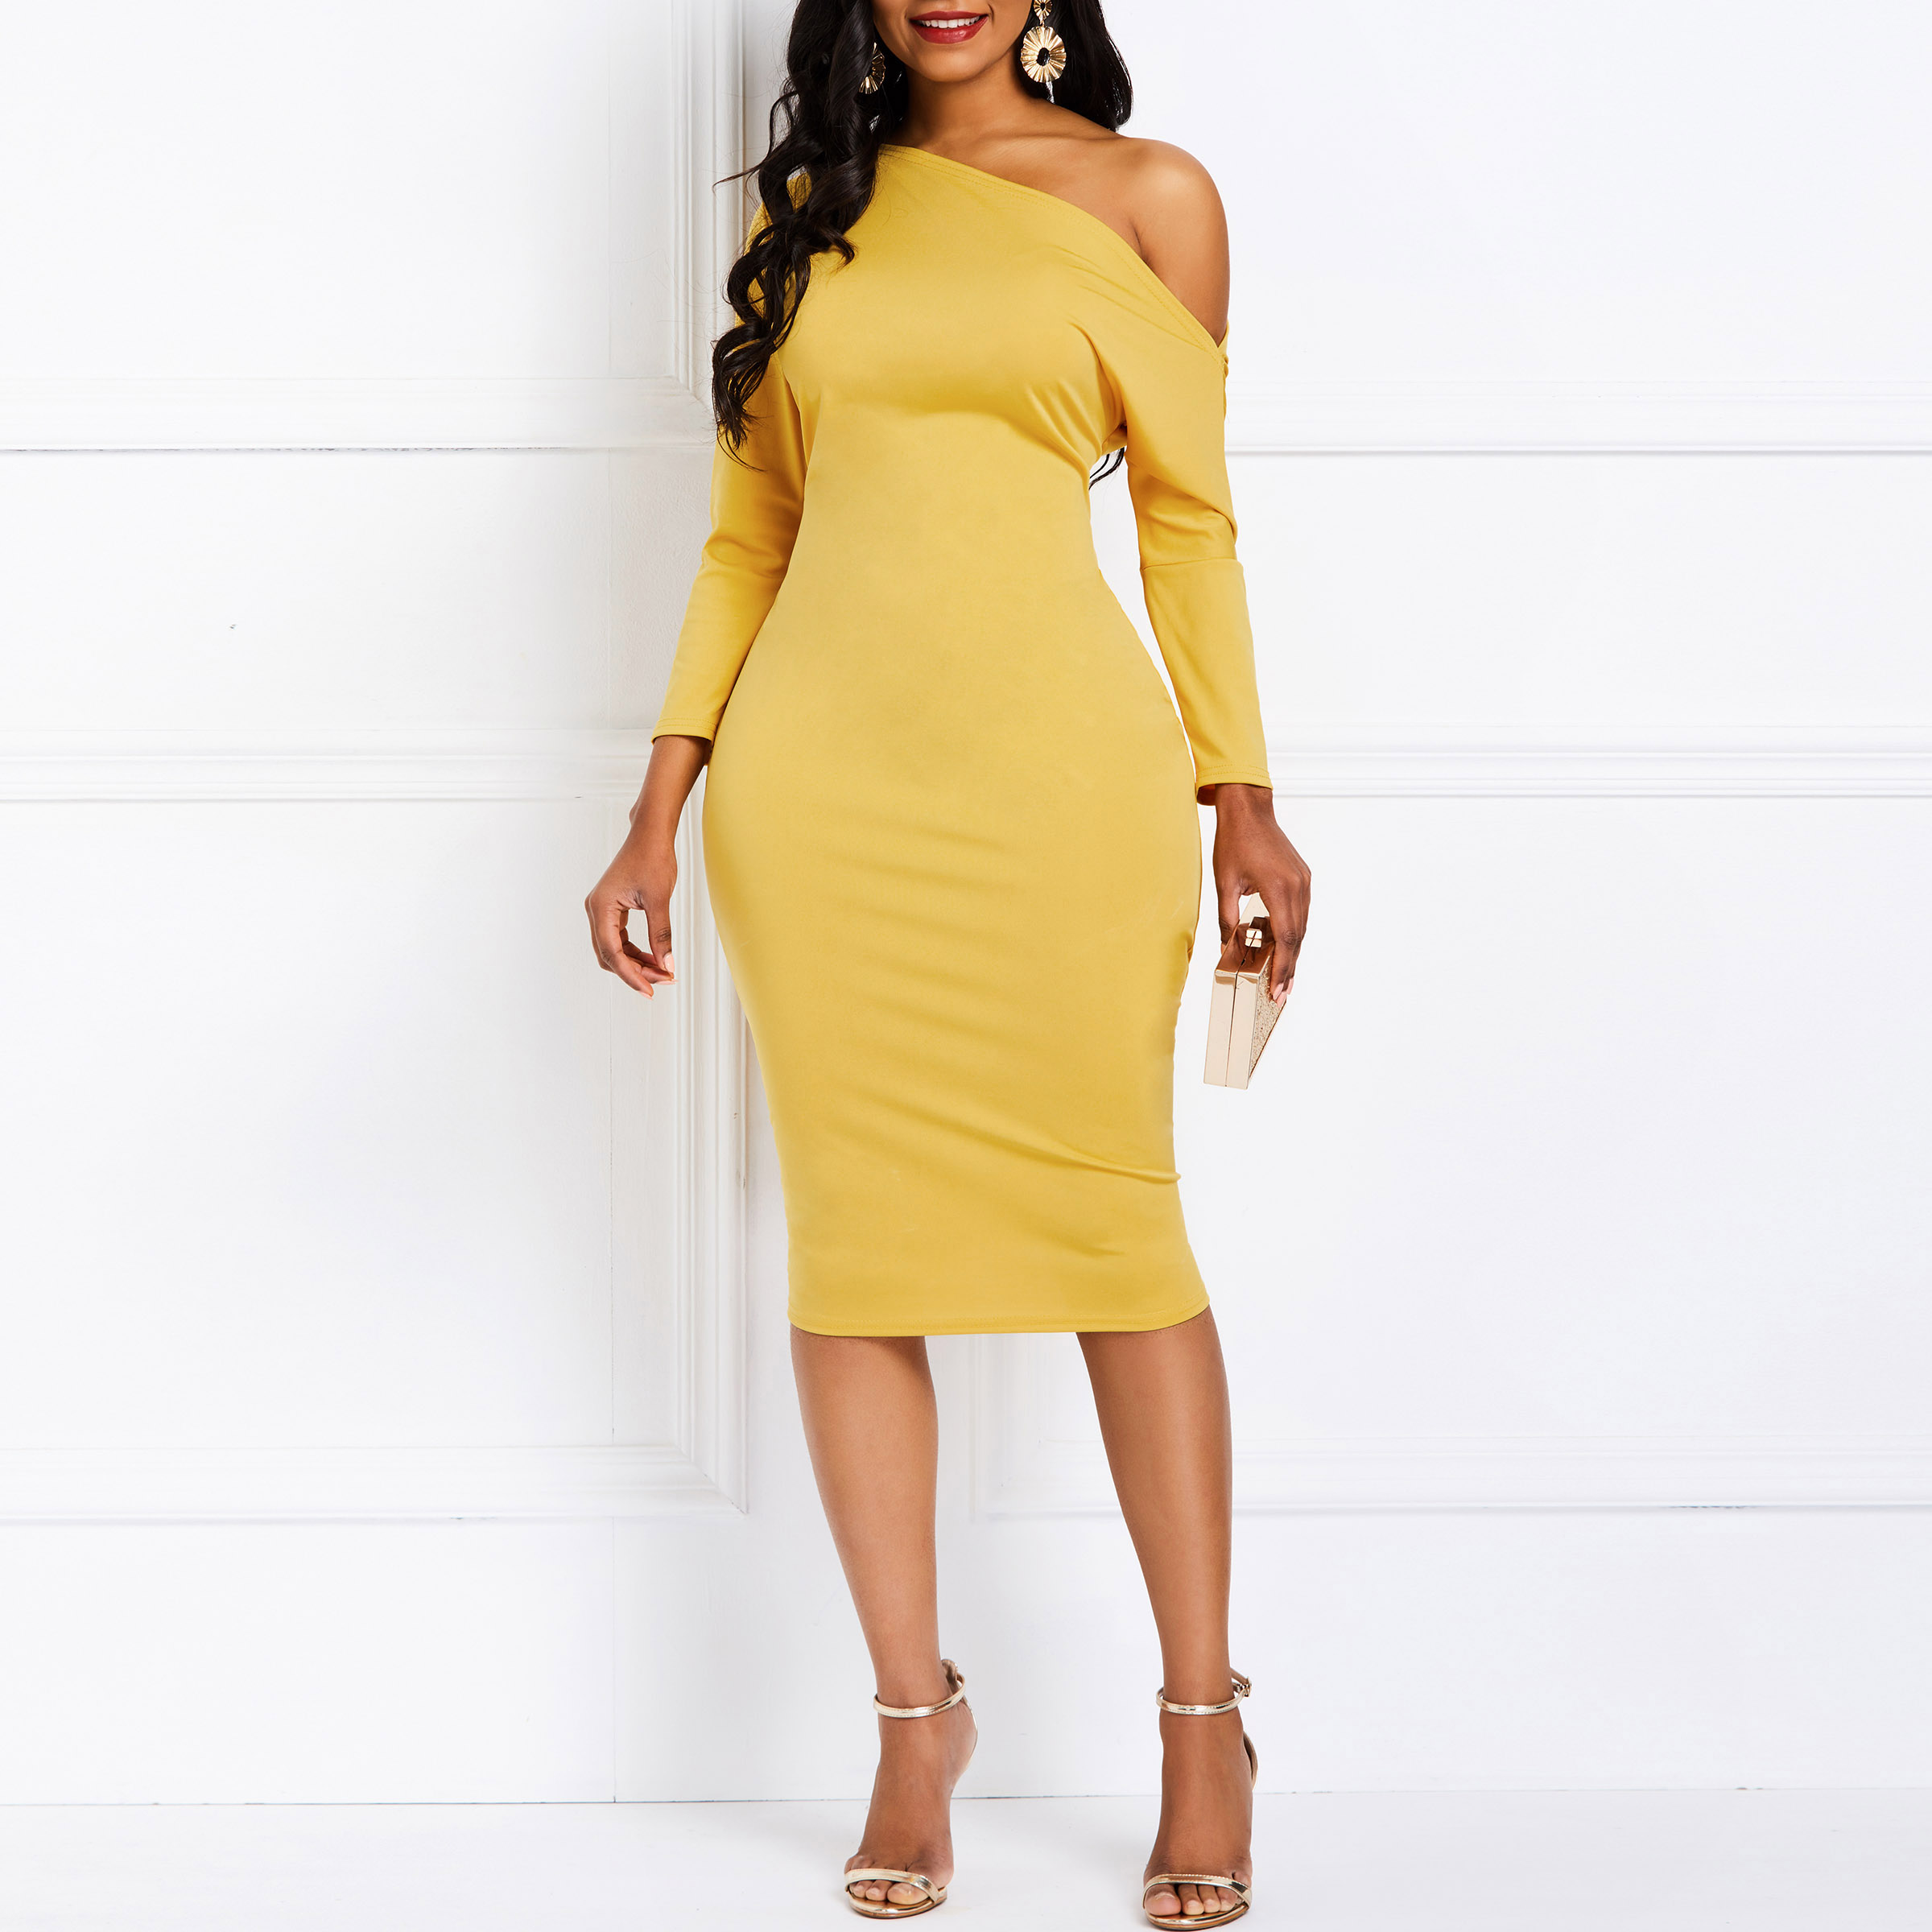 One Shoulder Bodycon Cocktail Party Dress Women Spring Vintage Midi Elegant Dresses Sexy Fashion Yellow Slim Dinner Dresses